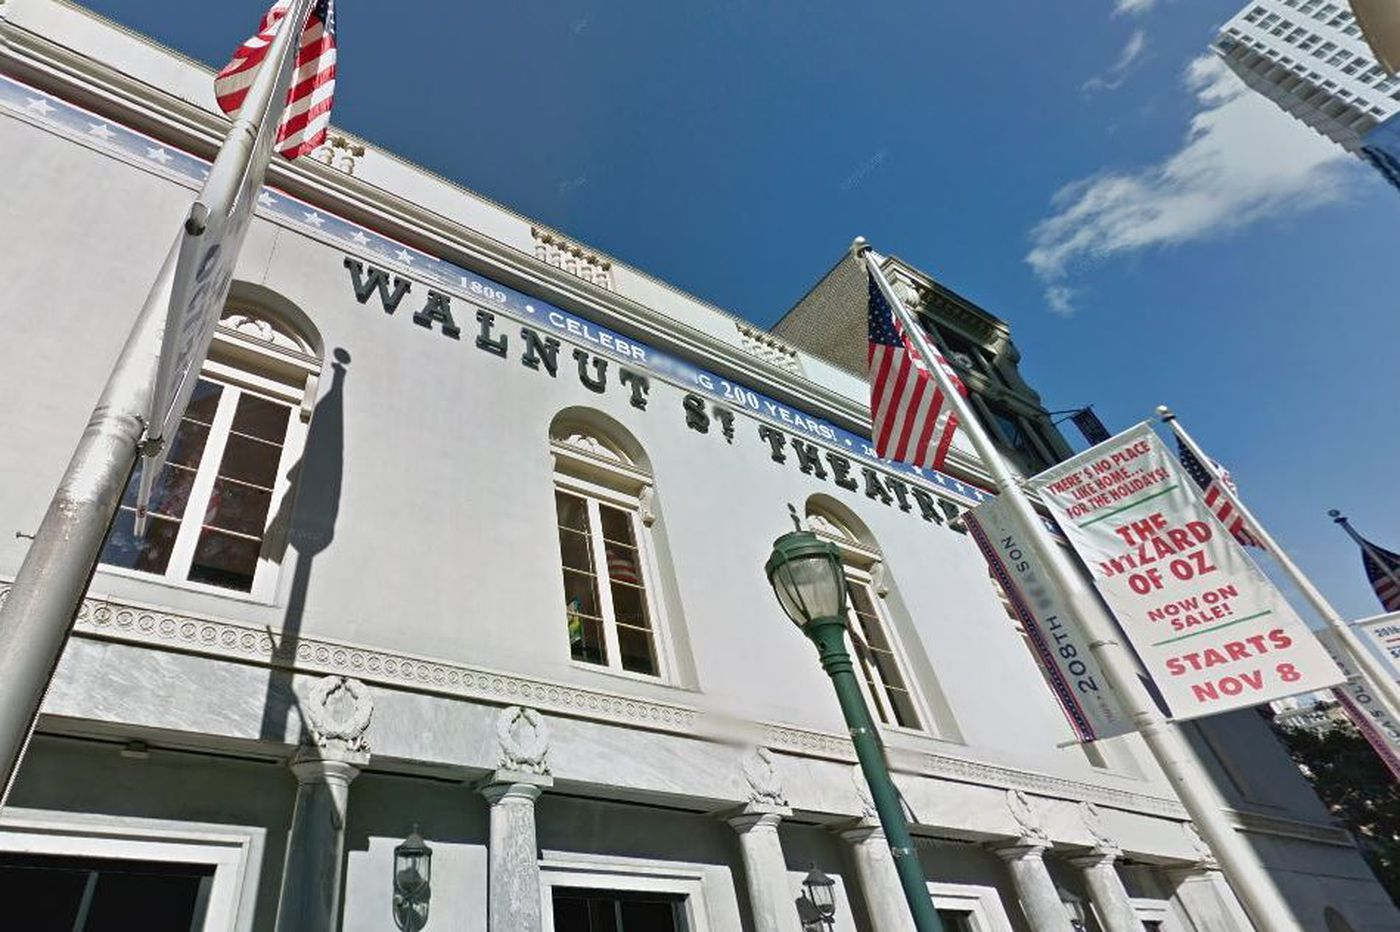 Stagehands union pickets Walnut Street Theatre over two firings